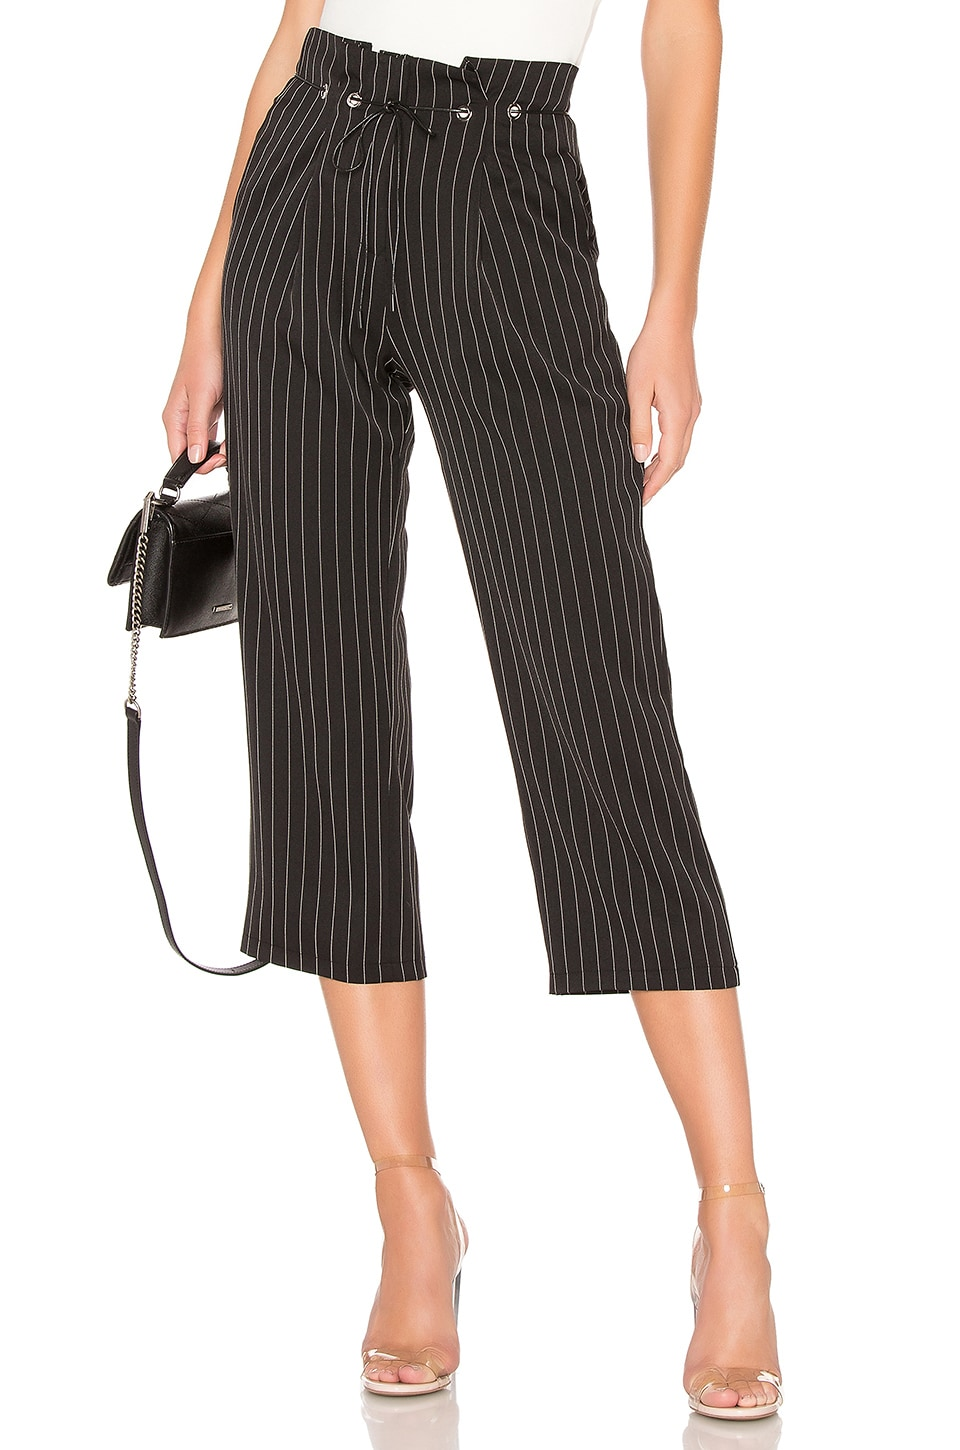 About Us Chloe Pleated Pant in Black Pinstripe